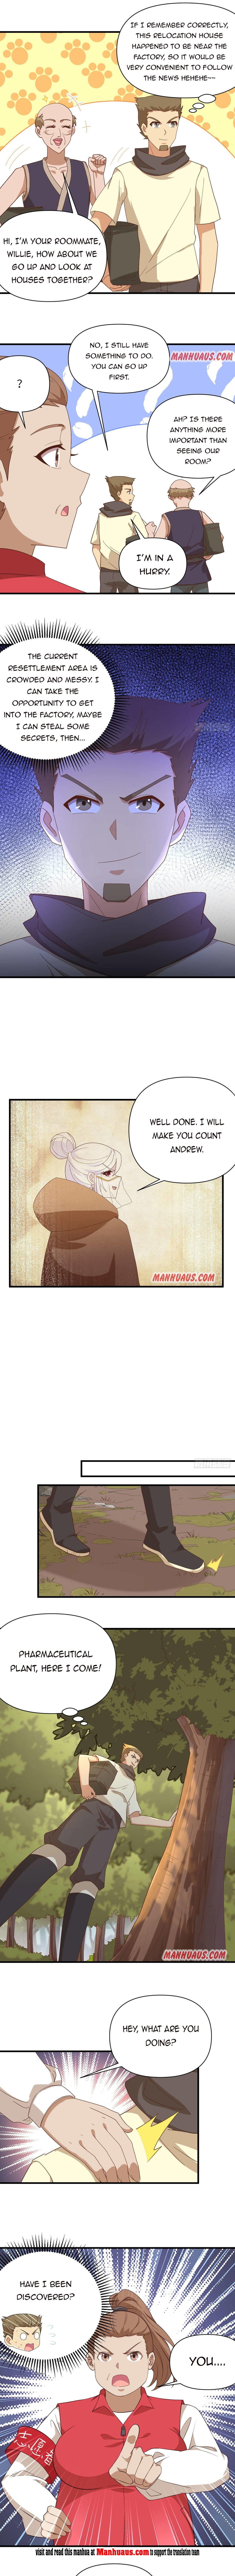 Starting From Today I'll Work As A City Lord Chapter 329 page 2 - Mangakakalots.com